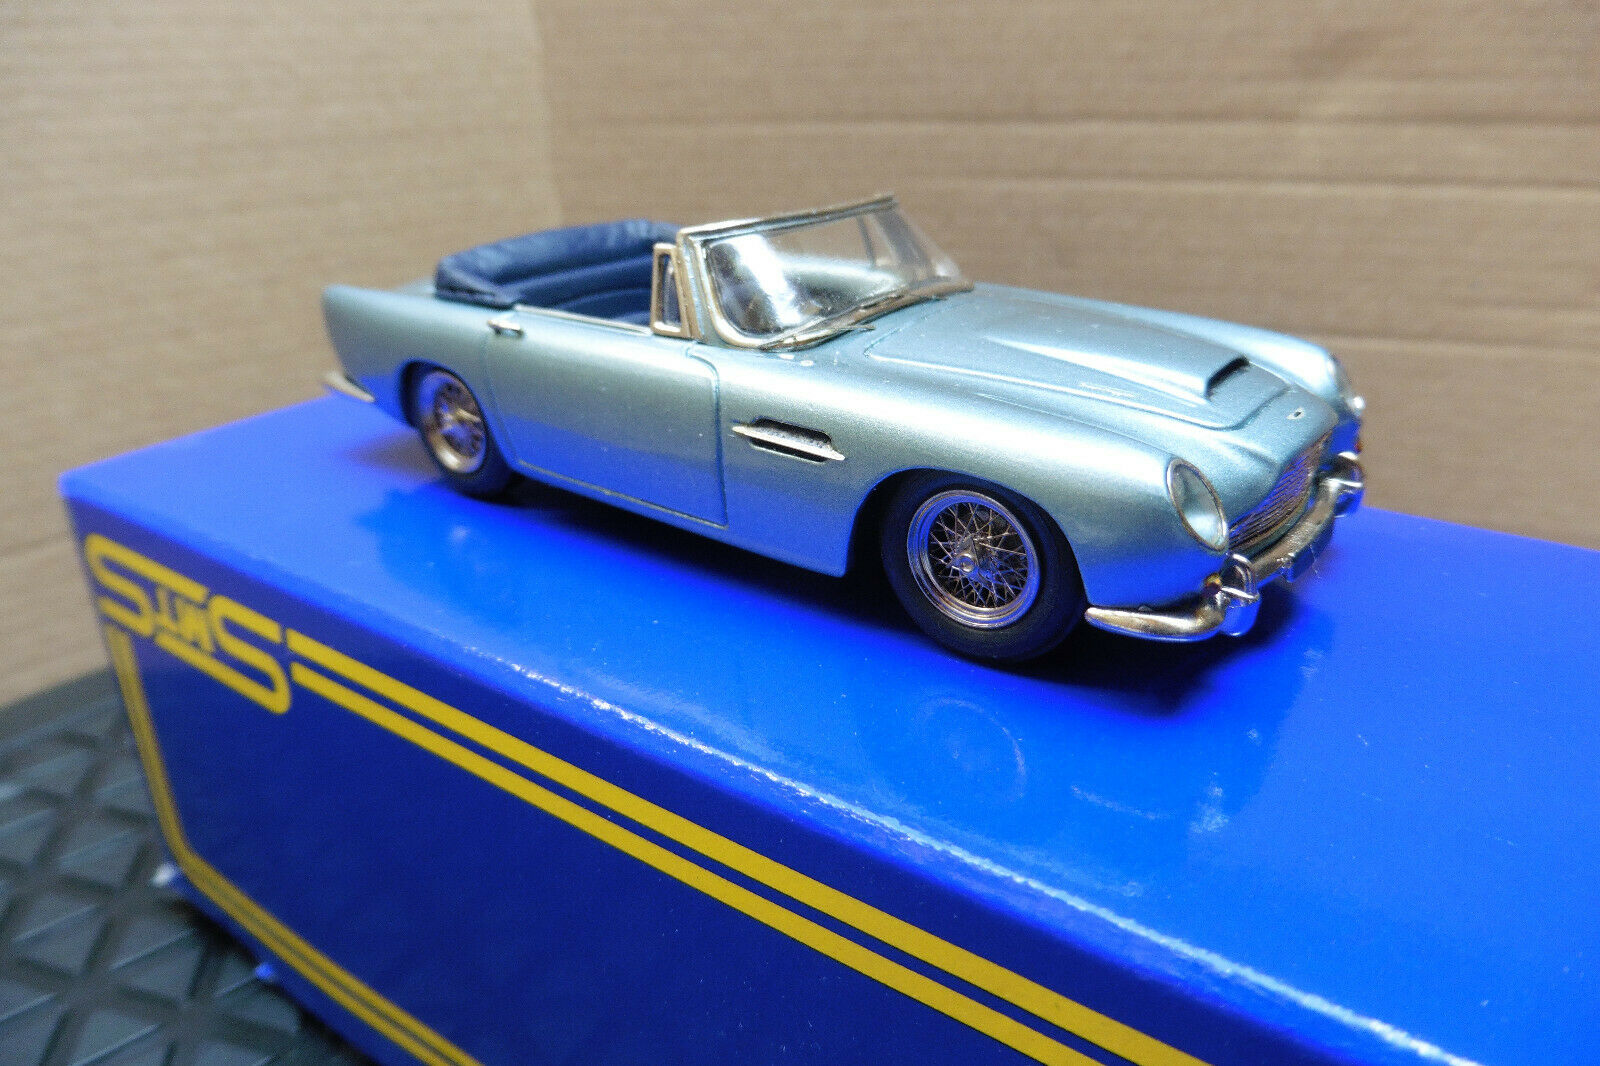 SMTS MODELS 1 43 CL II ASTON MARTIN DB5 CONGrünABLE Weiß METAL BOXED